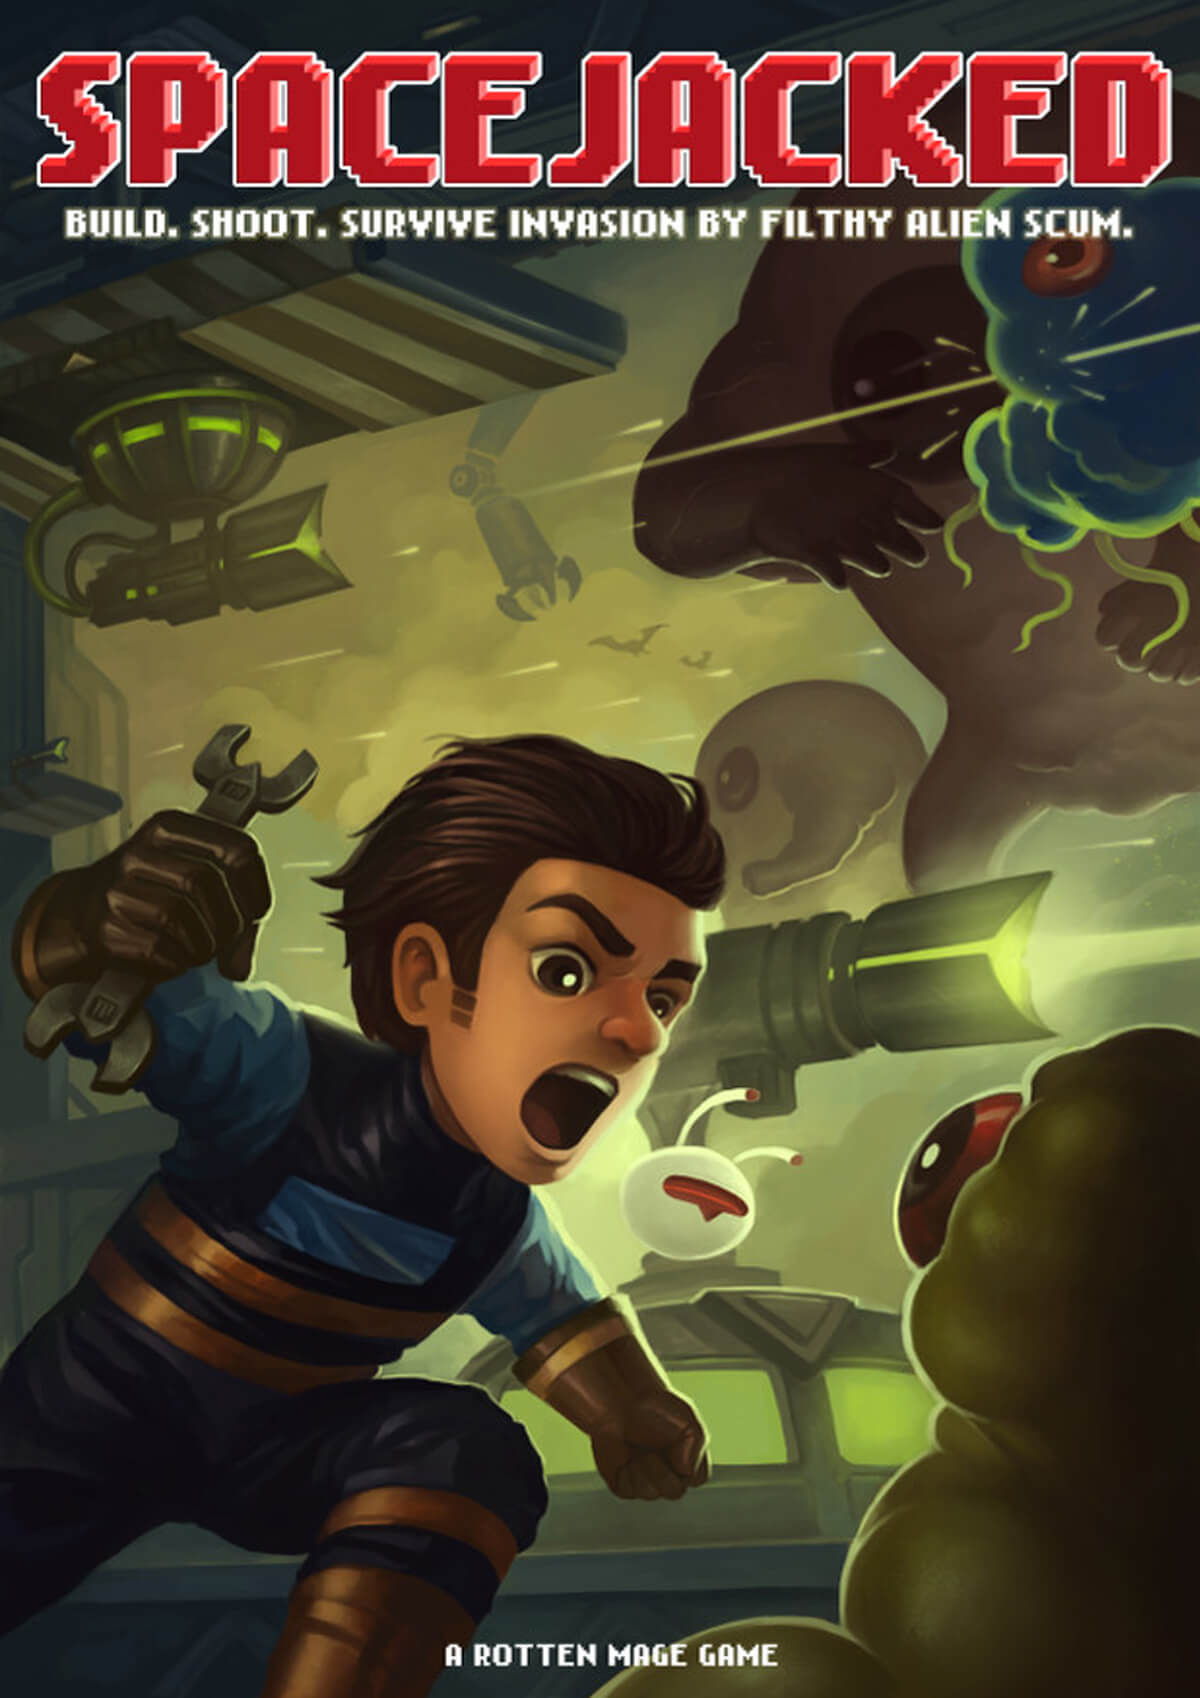 Stylized poster for Spacejacked, with the character lunging at a green alien with a wrench